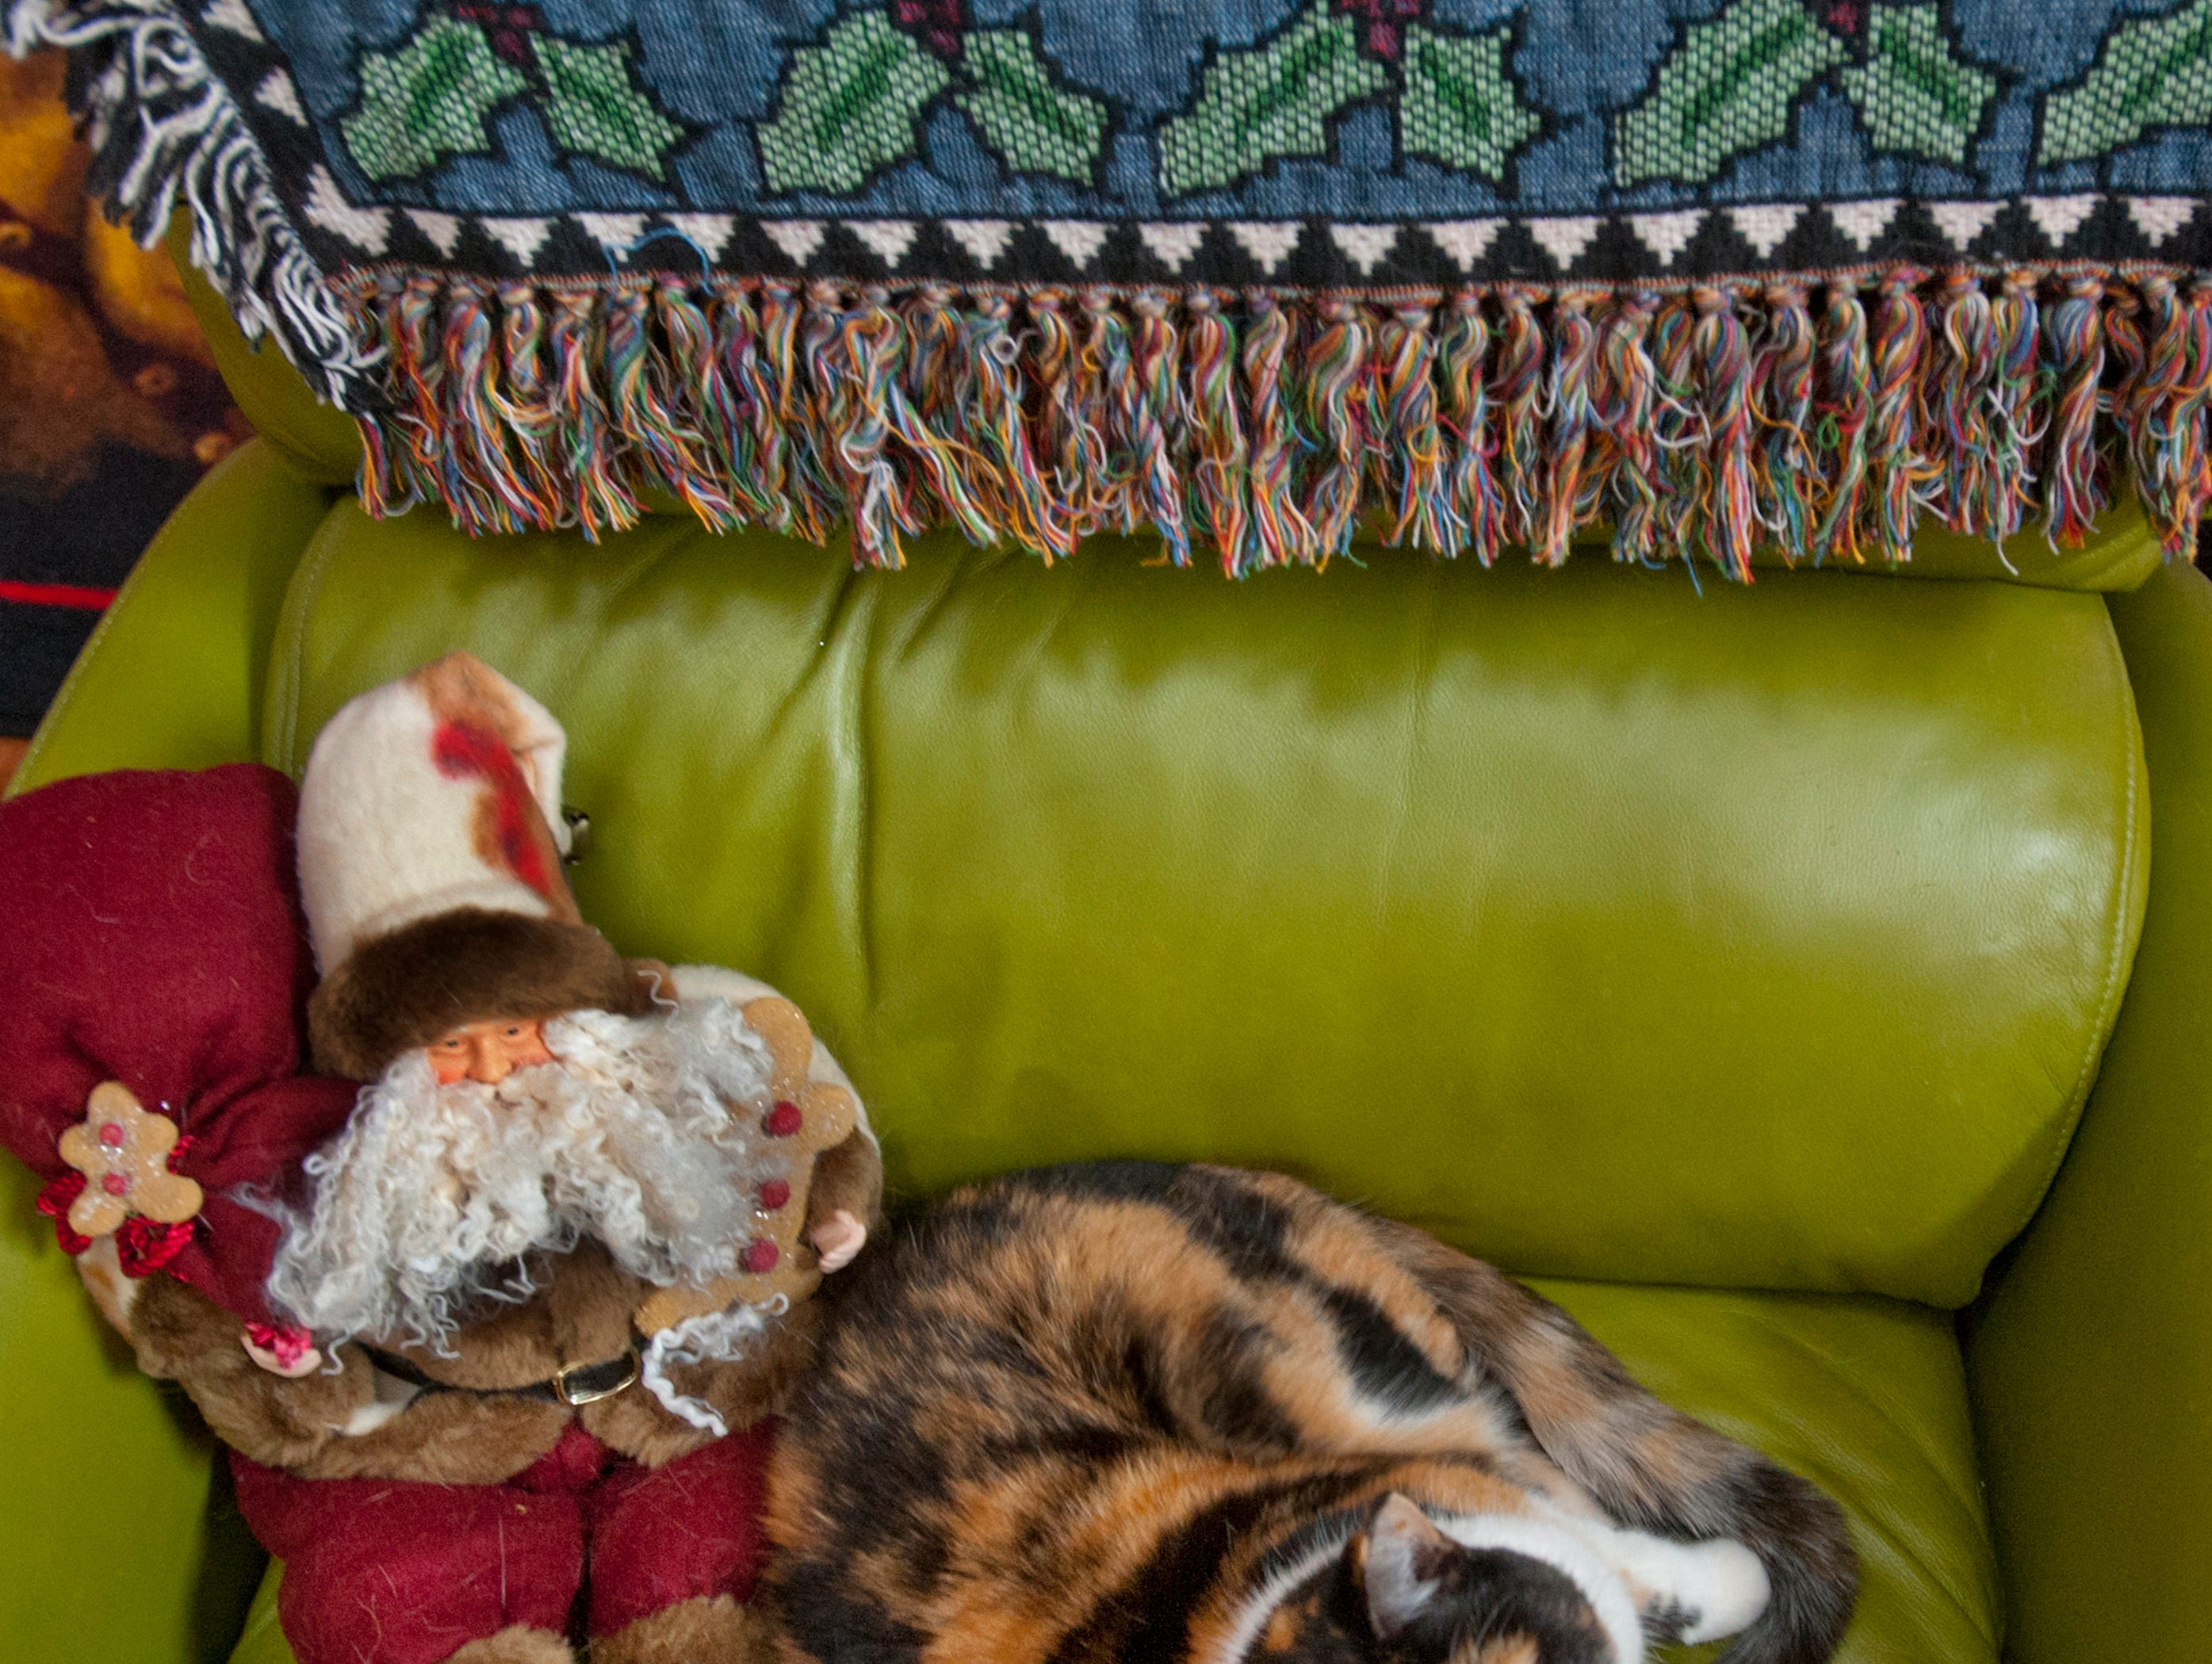 Callie, the McMurry's pet, shares a living room couch with a Santa doll.